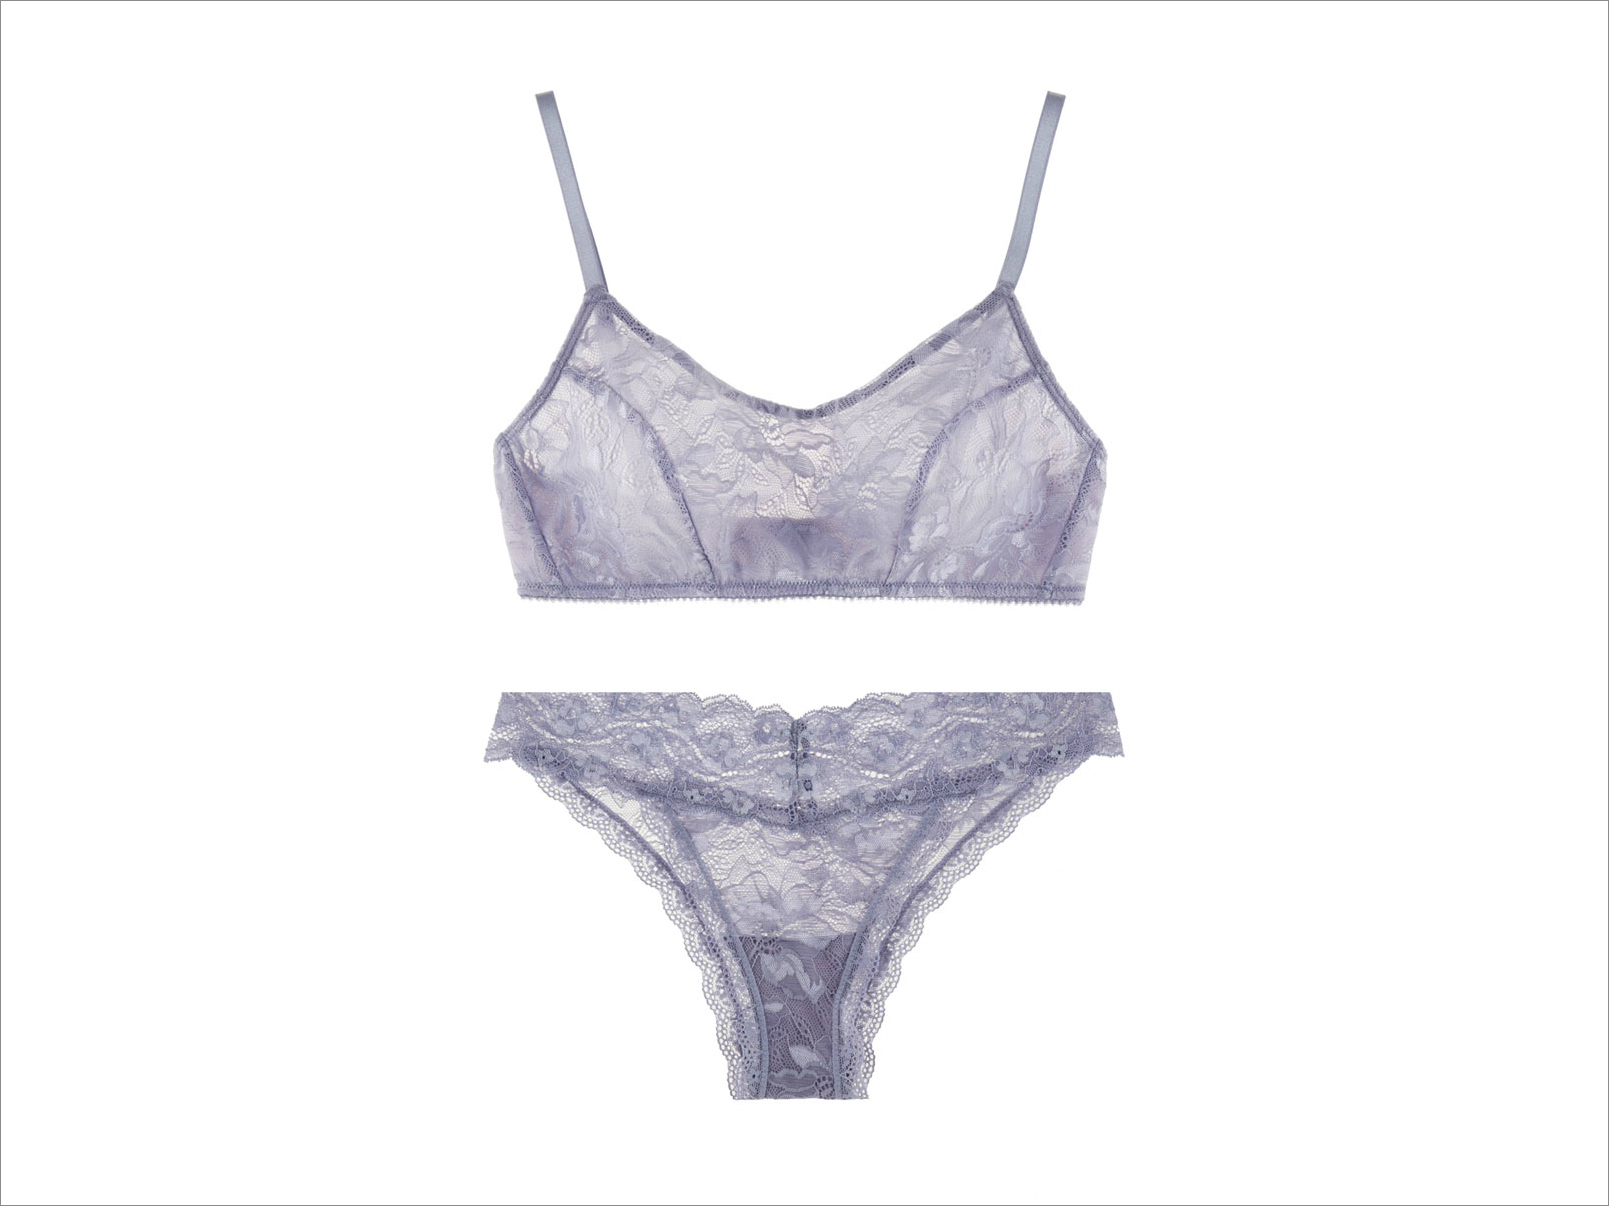 Undies.com lavender Luna bralette and laurent brazillian bottom intimates bridal lingerie ideas